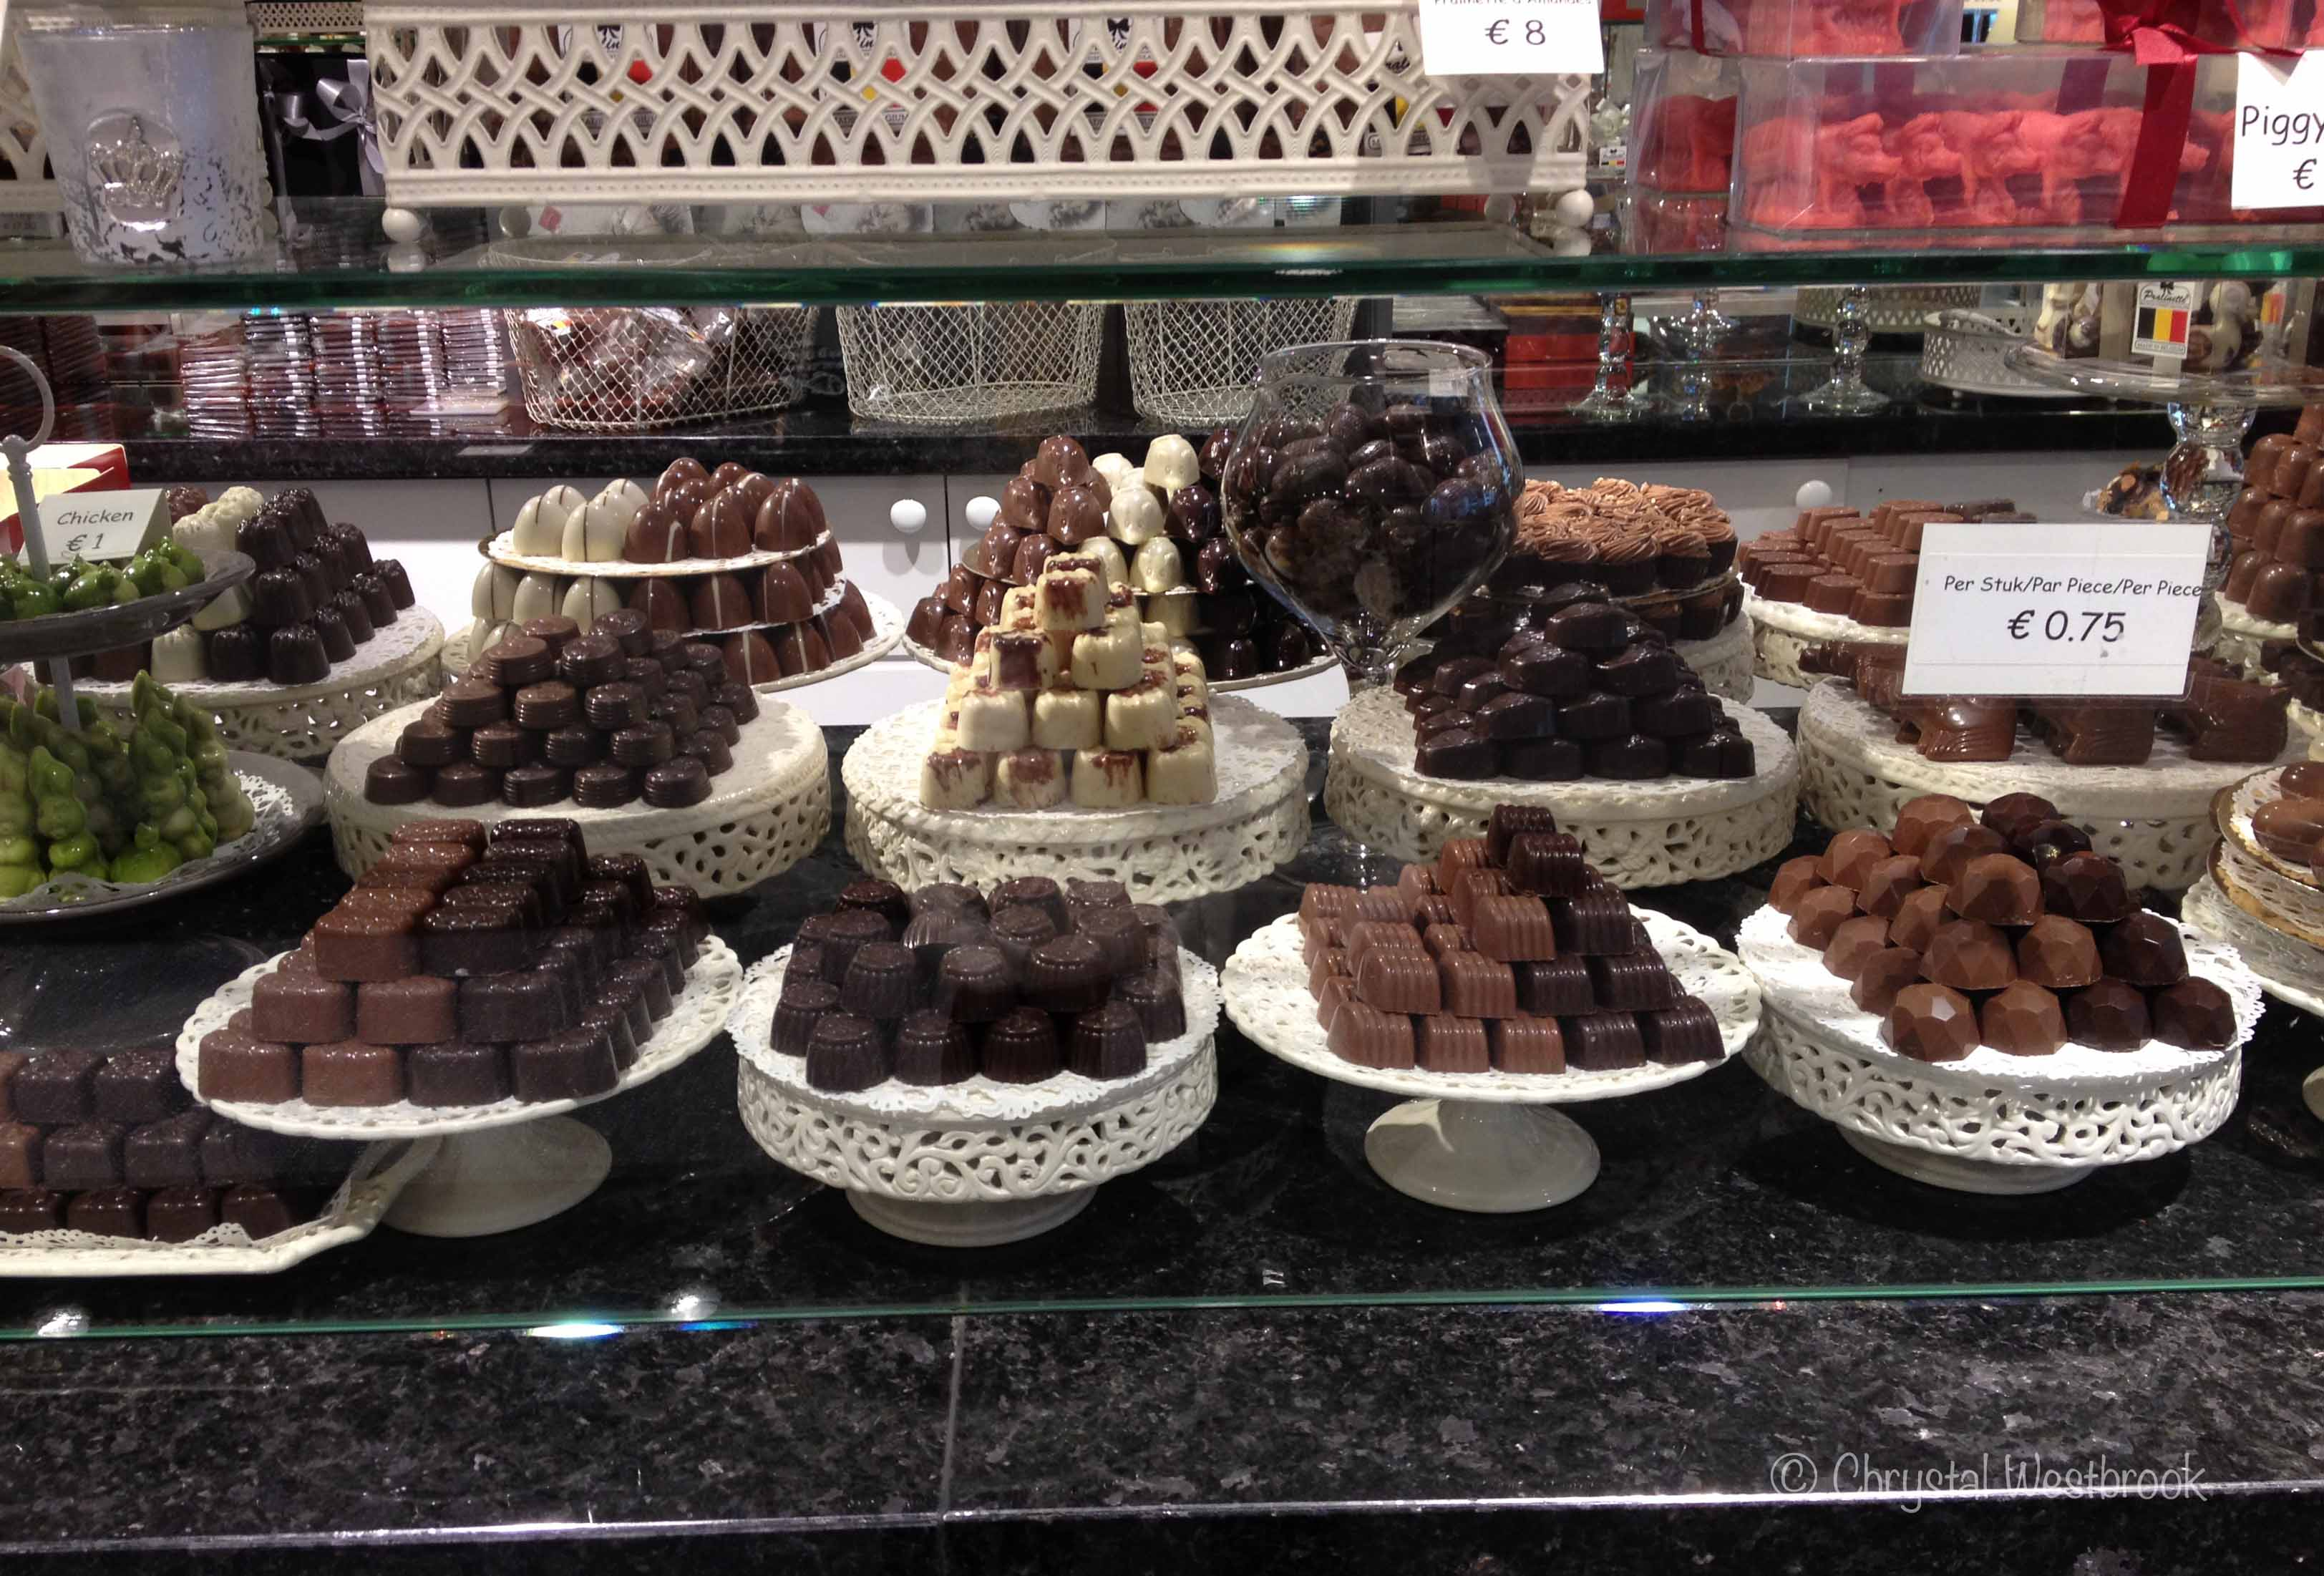 [IMAGE] Display case of Belgian chocolates